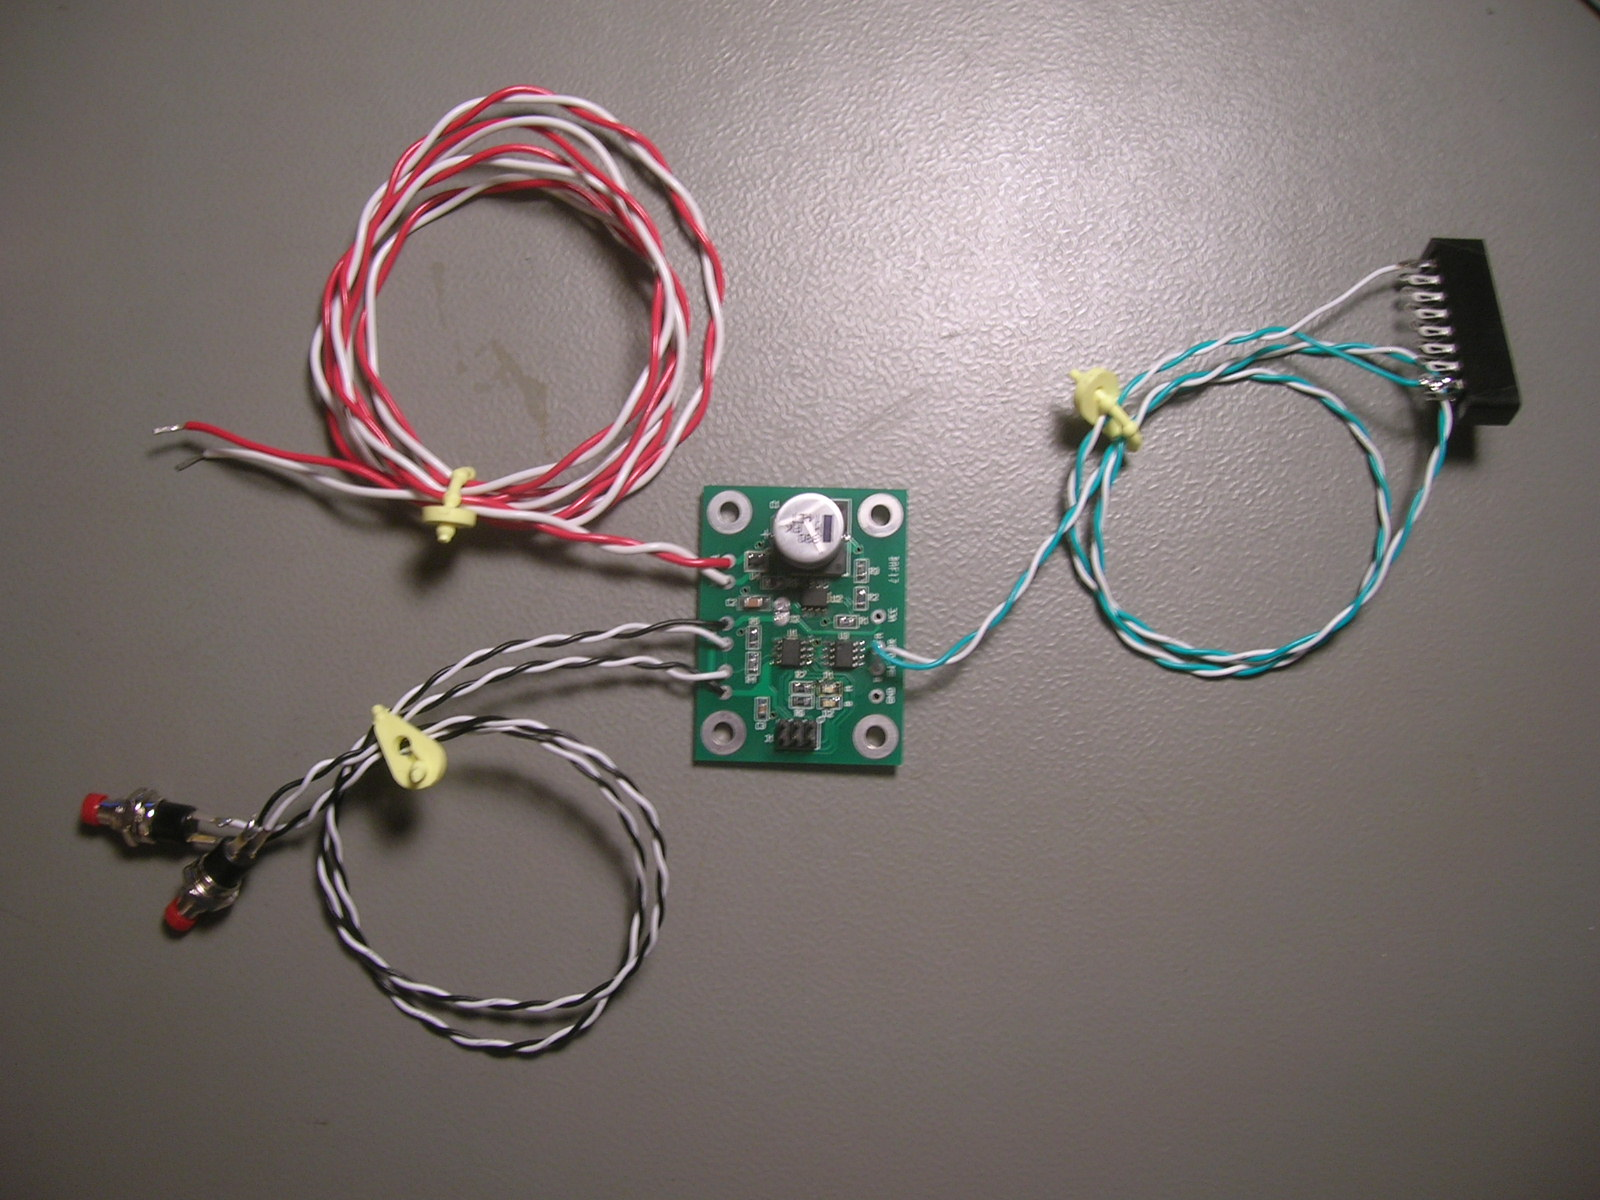 Rr Cirkits Bnm Hobbies The Home Of Exclusive Products Simple Circuit Board Rrcirkits Inc Page Free Mo Switch Driver Fully Wired Ready To Use